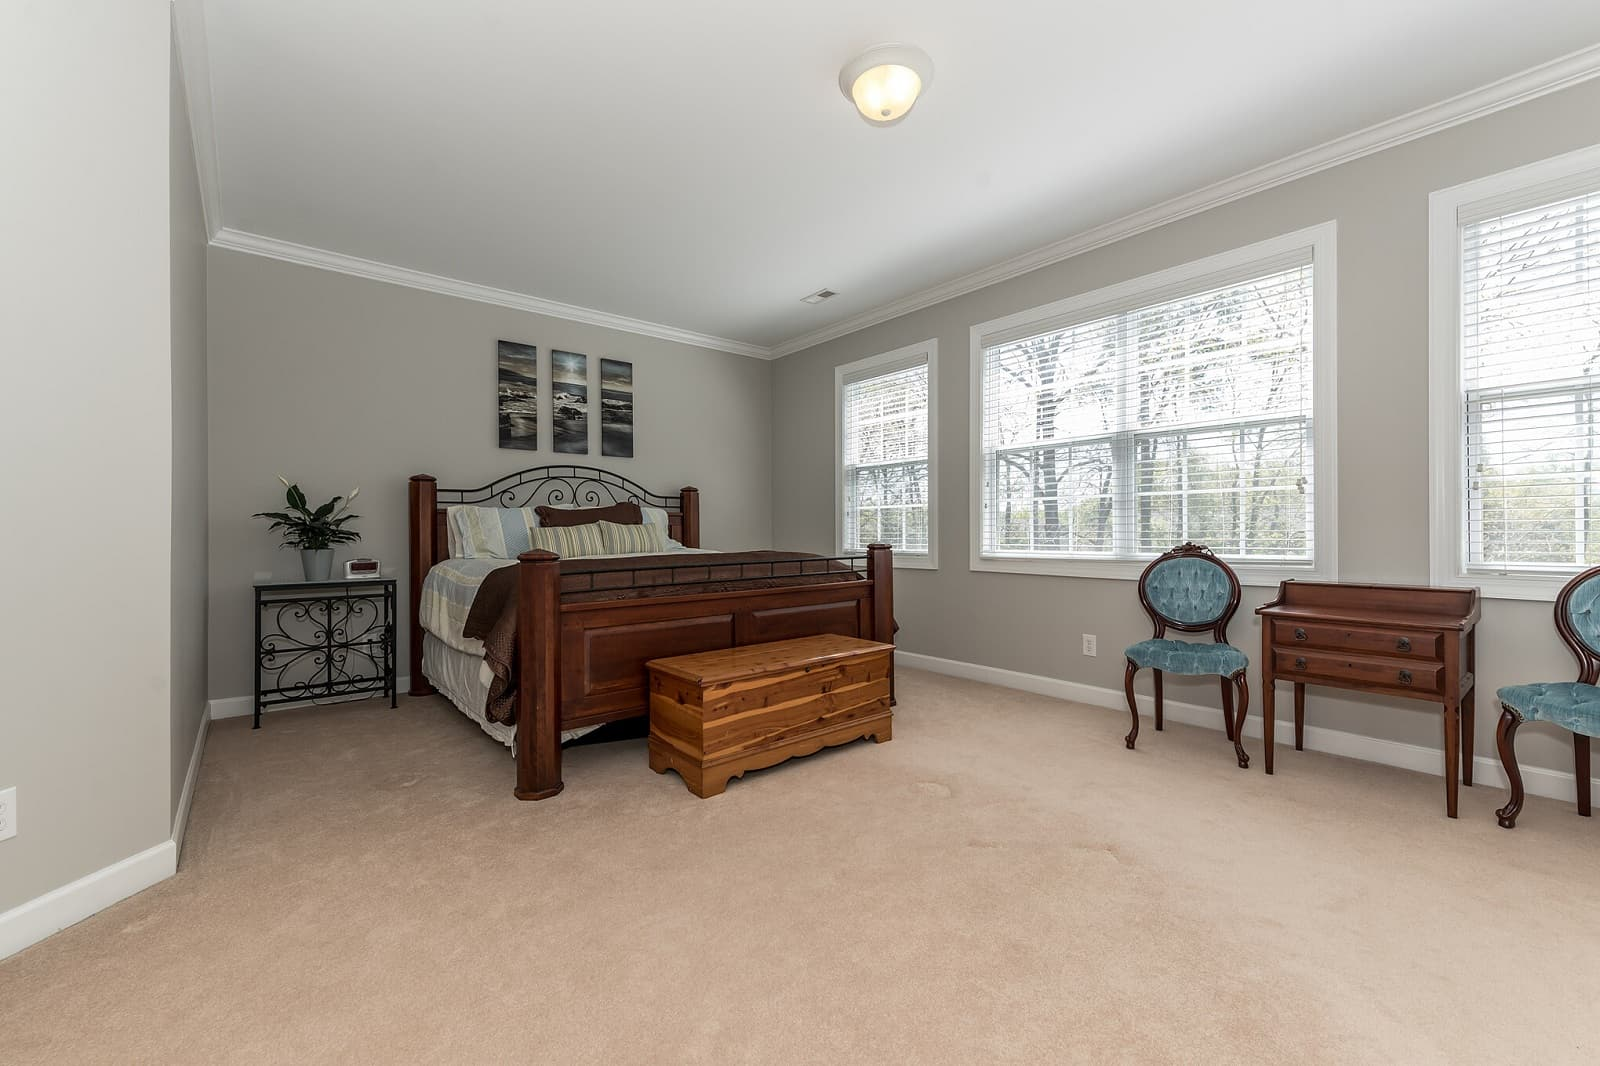 Real Estate Photography in Matthews - NC - USA - Bedroom View